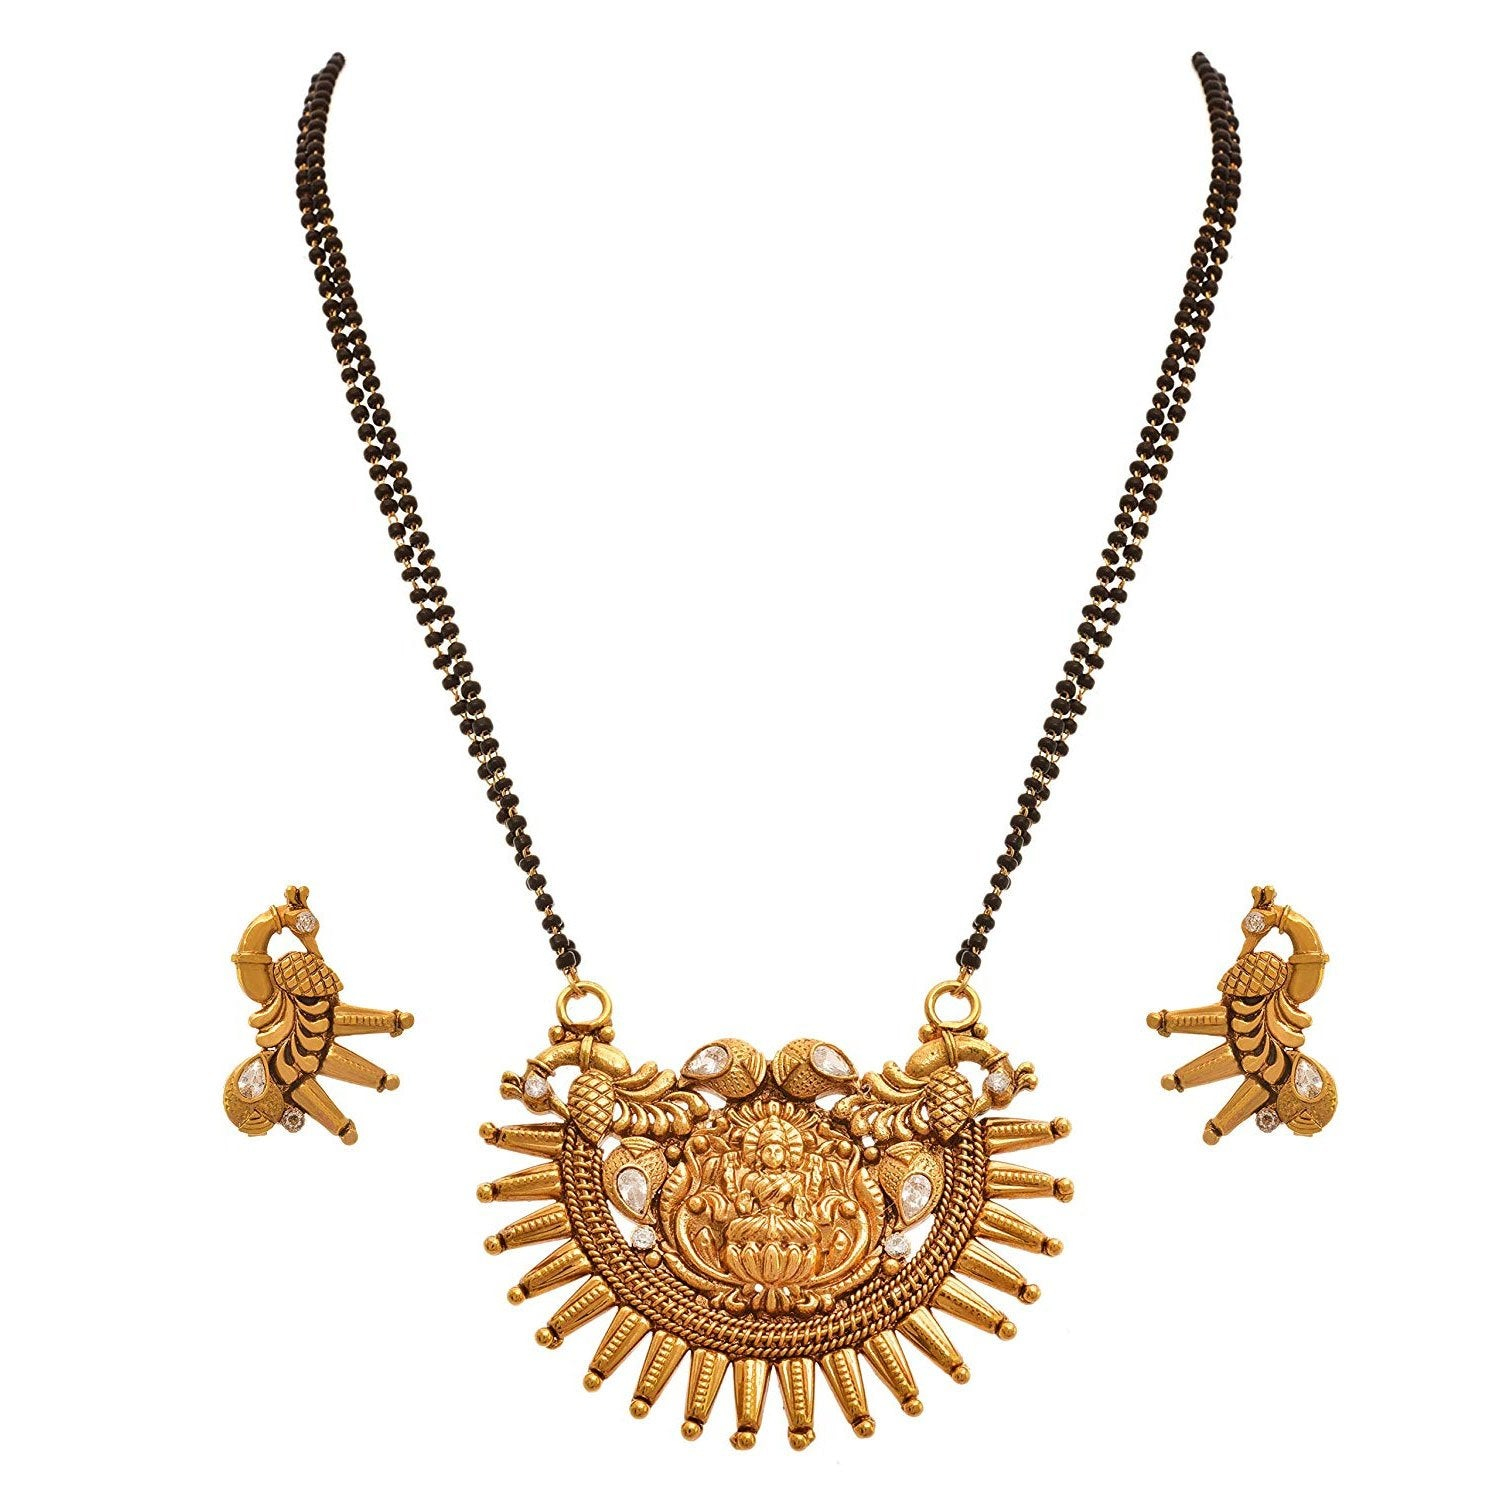 JFL - Traditional Ethnic One Gram Gold Plated Goddess Laxmi With Peacock Designer Mangalsutra Jewellery Mangalsutra Set with Earring for Women.